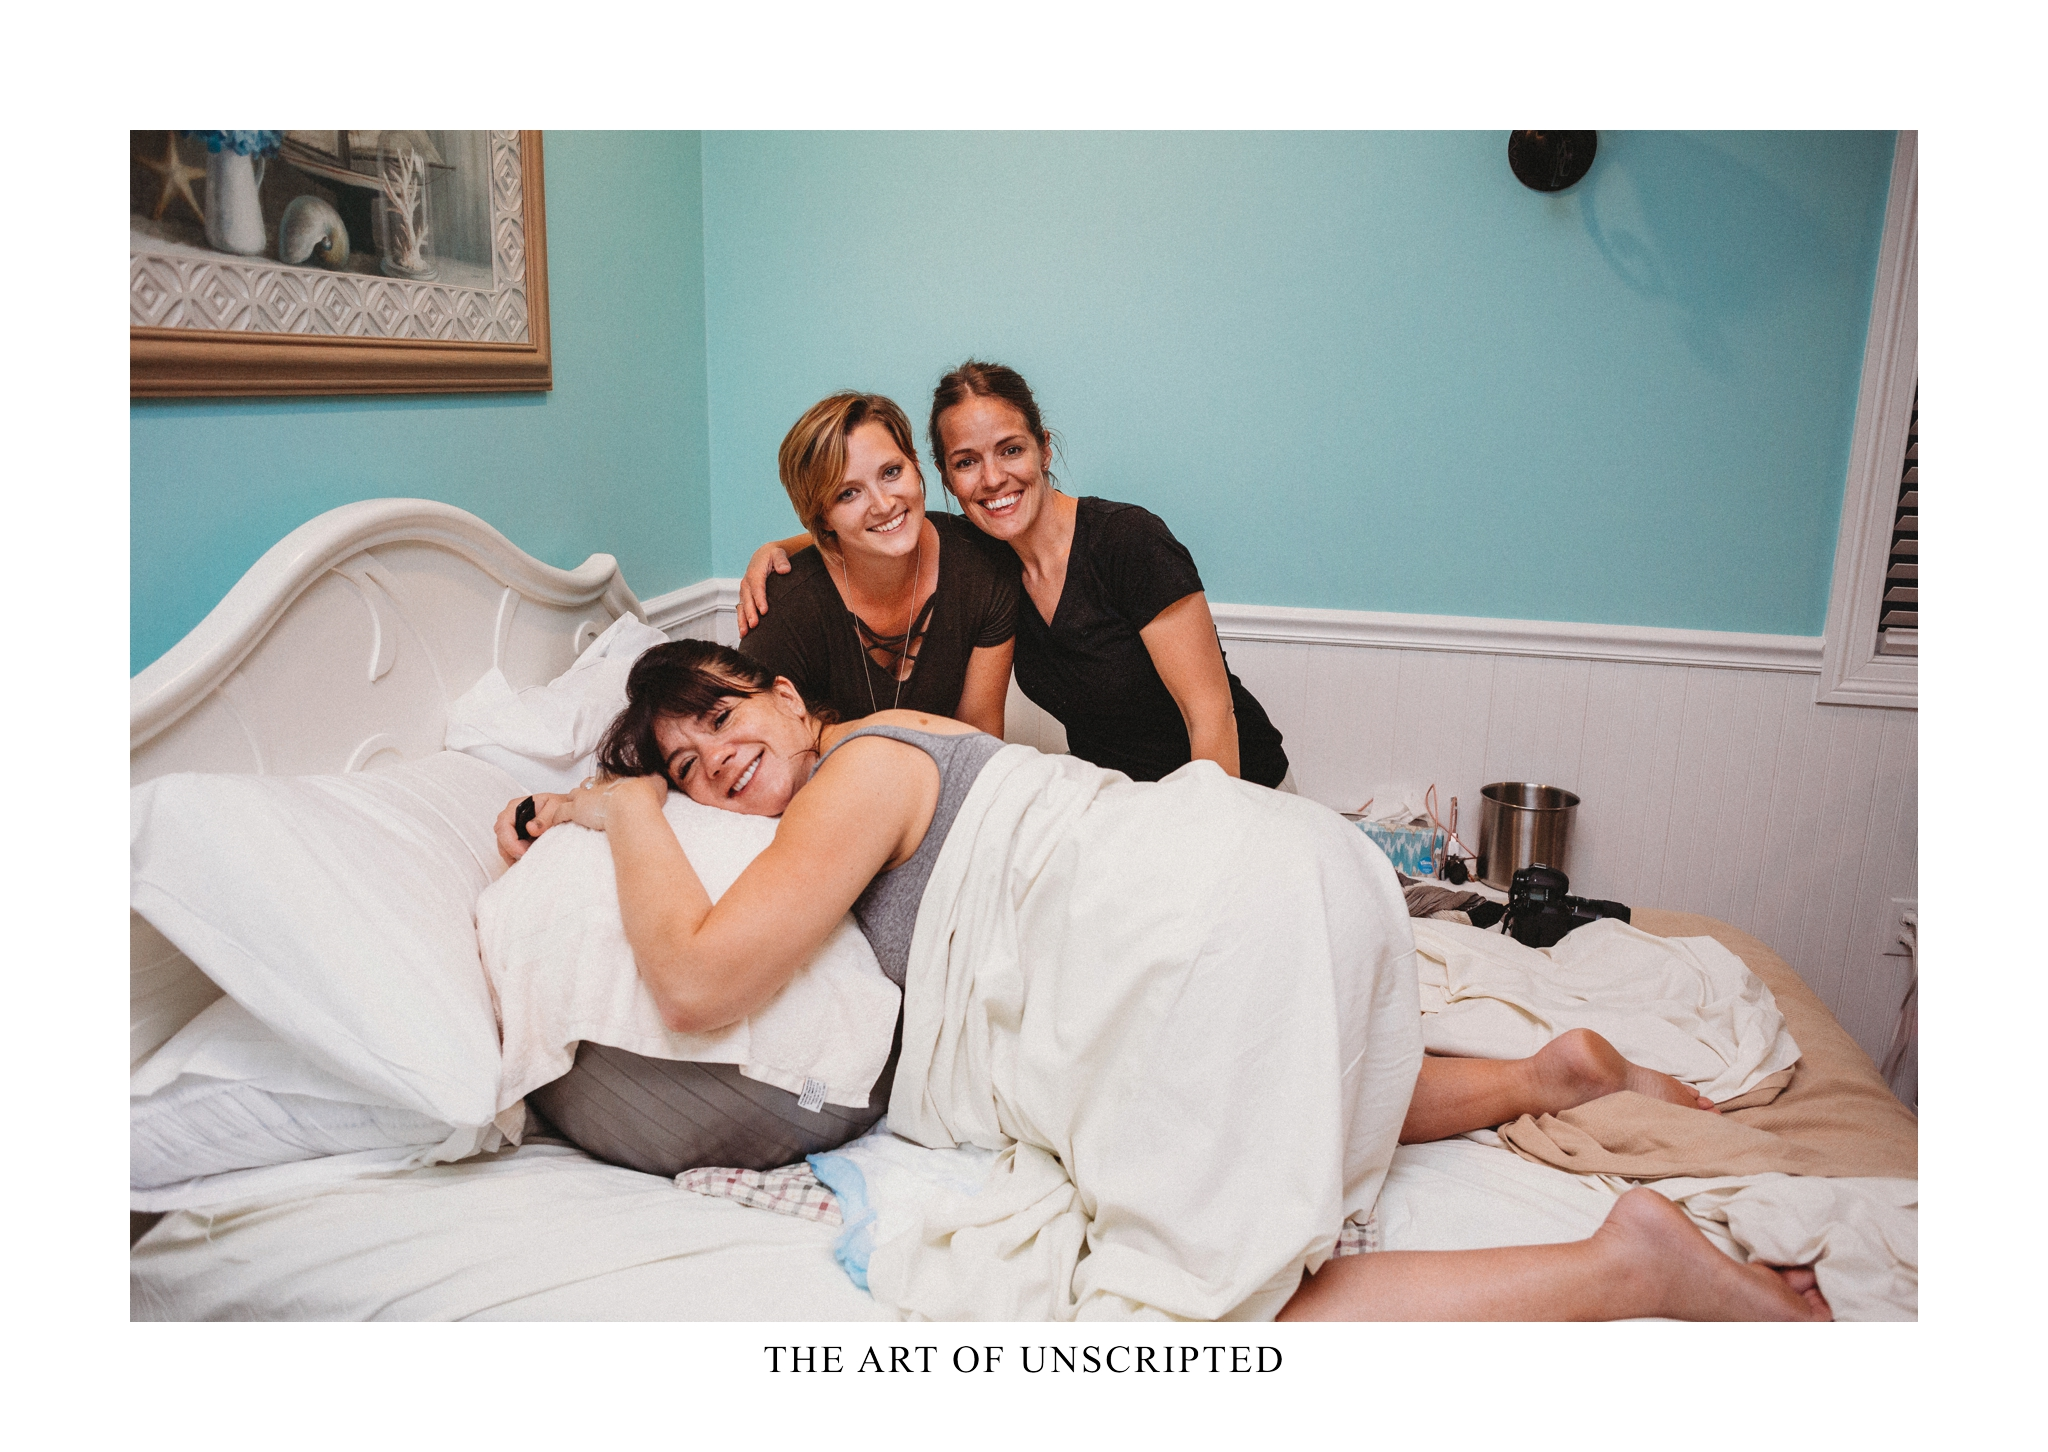 2017-06-10_204315__THE ART OF UNSCRIPTED_SPRINGFIELD MO_BIRTH PHOTOGRAPHER_ DOCUMENTARY_STORYTELLING_417_PHOTOGRAPHER